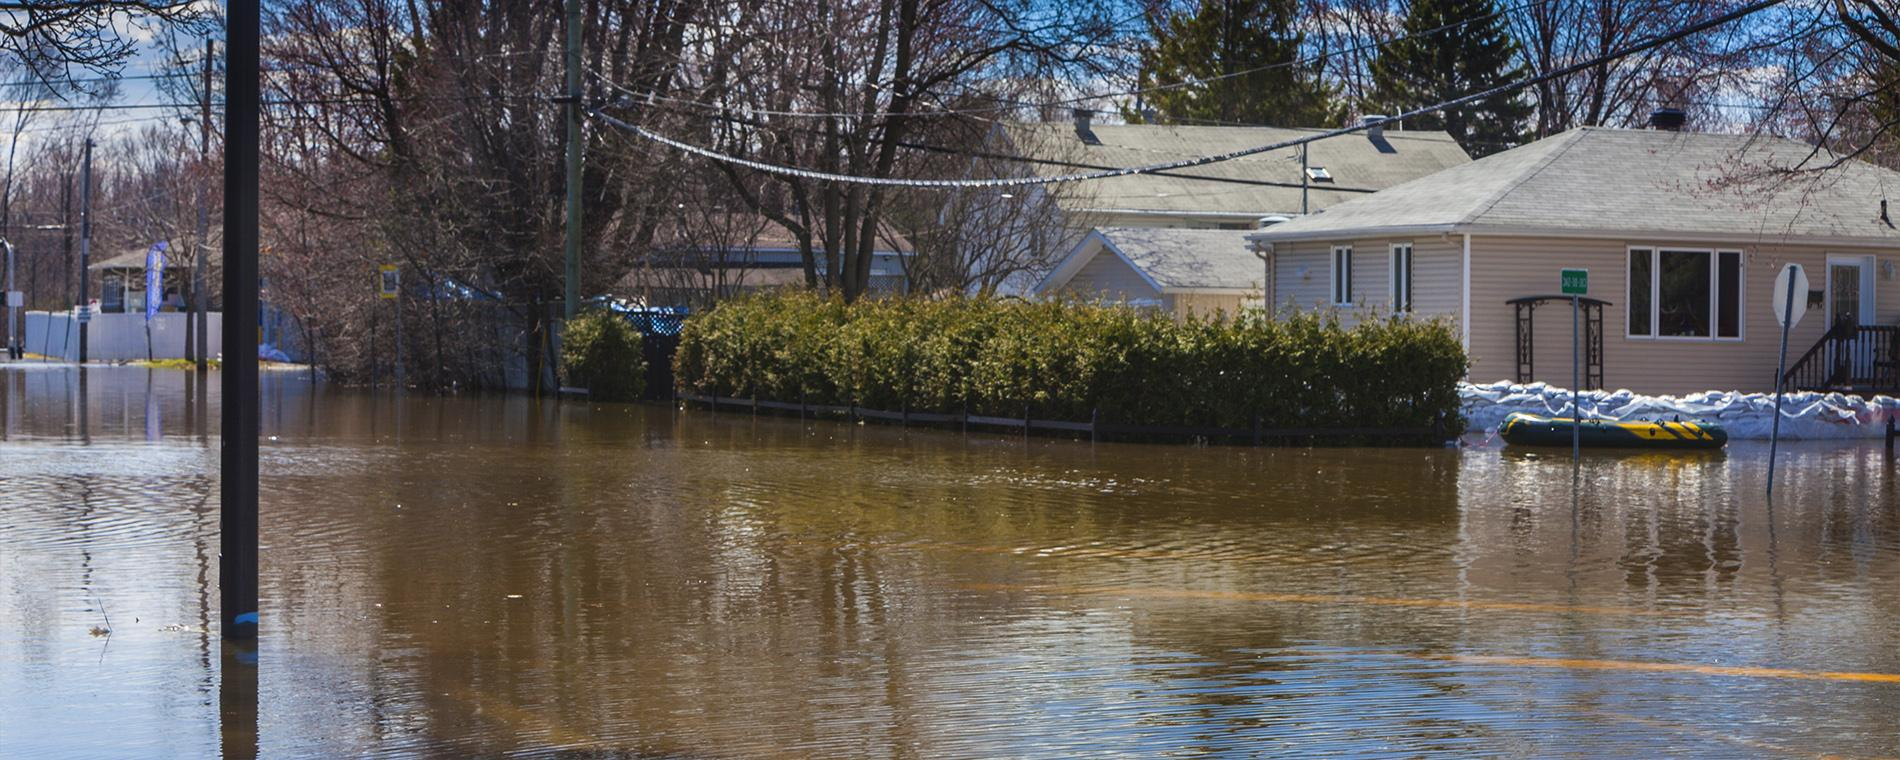 Quick tips on preparing for flooding